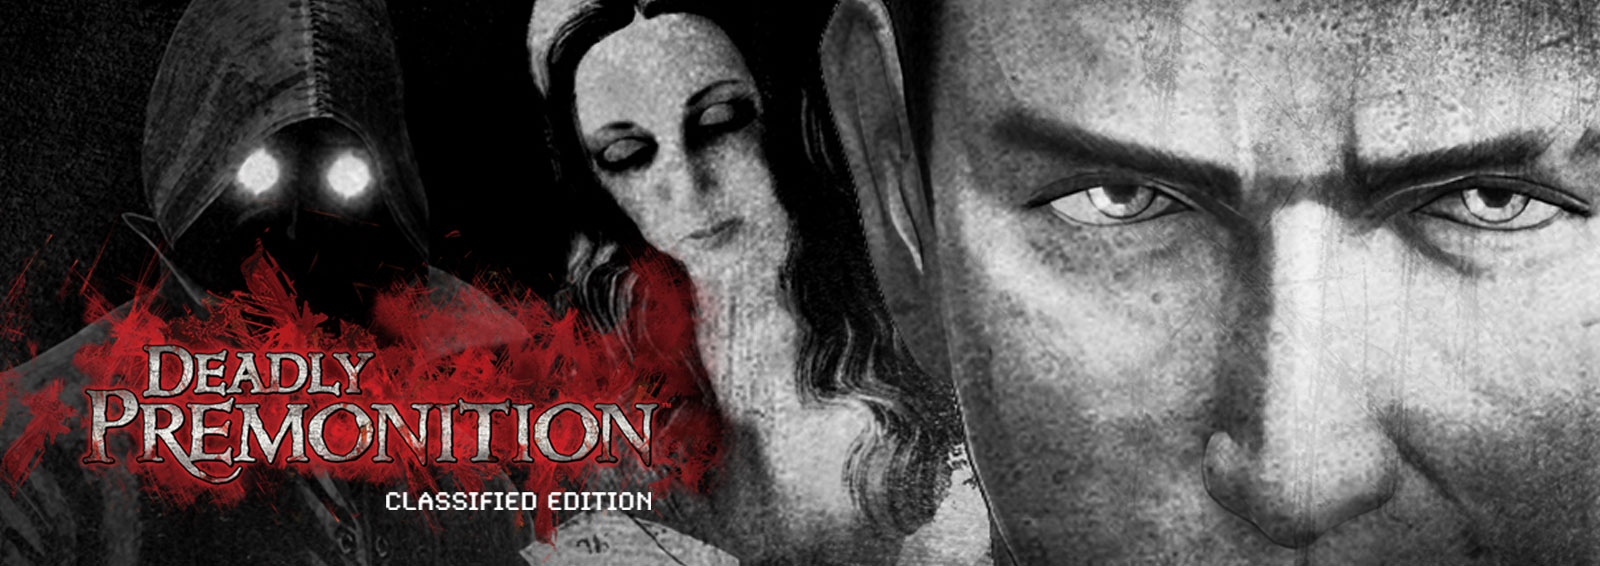 Deadly Premonition: The Director's Cut - Classified Edition